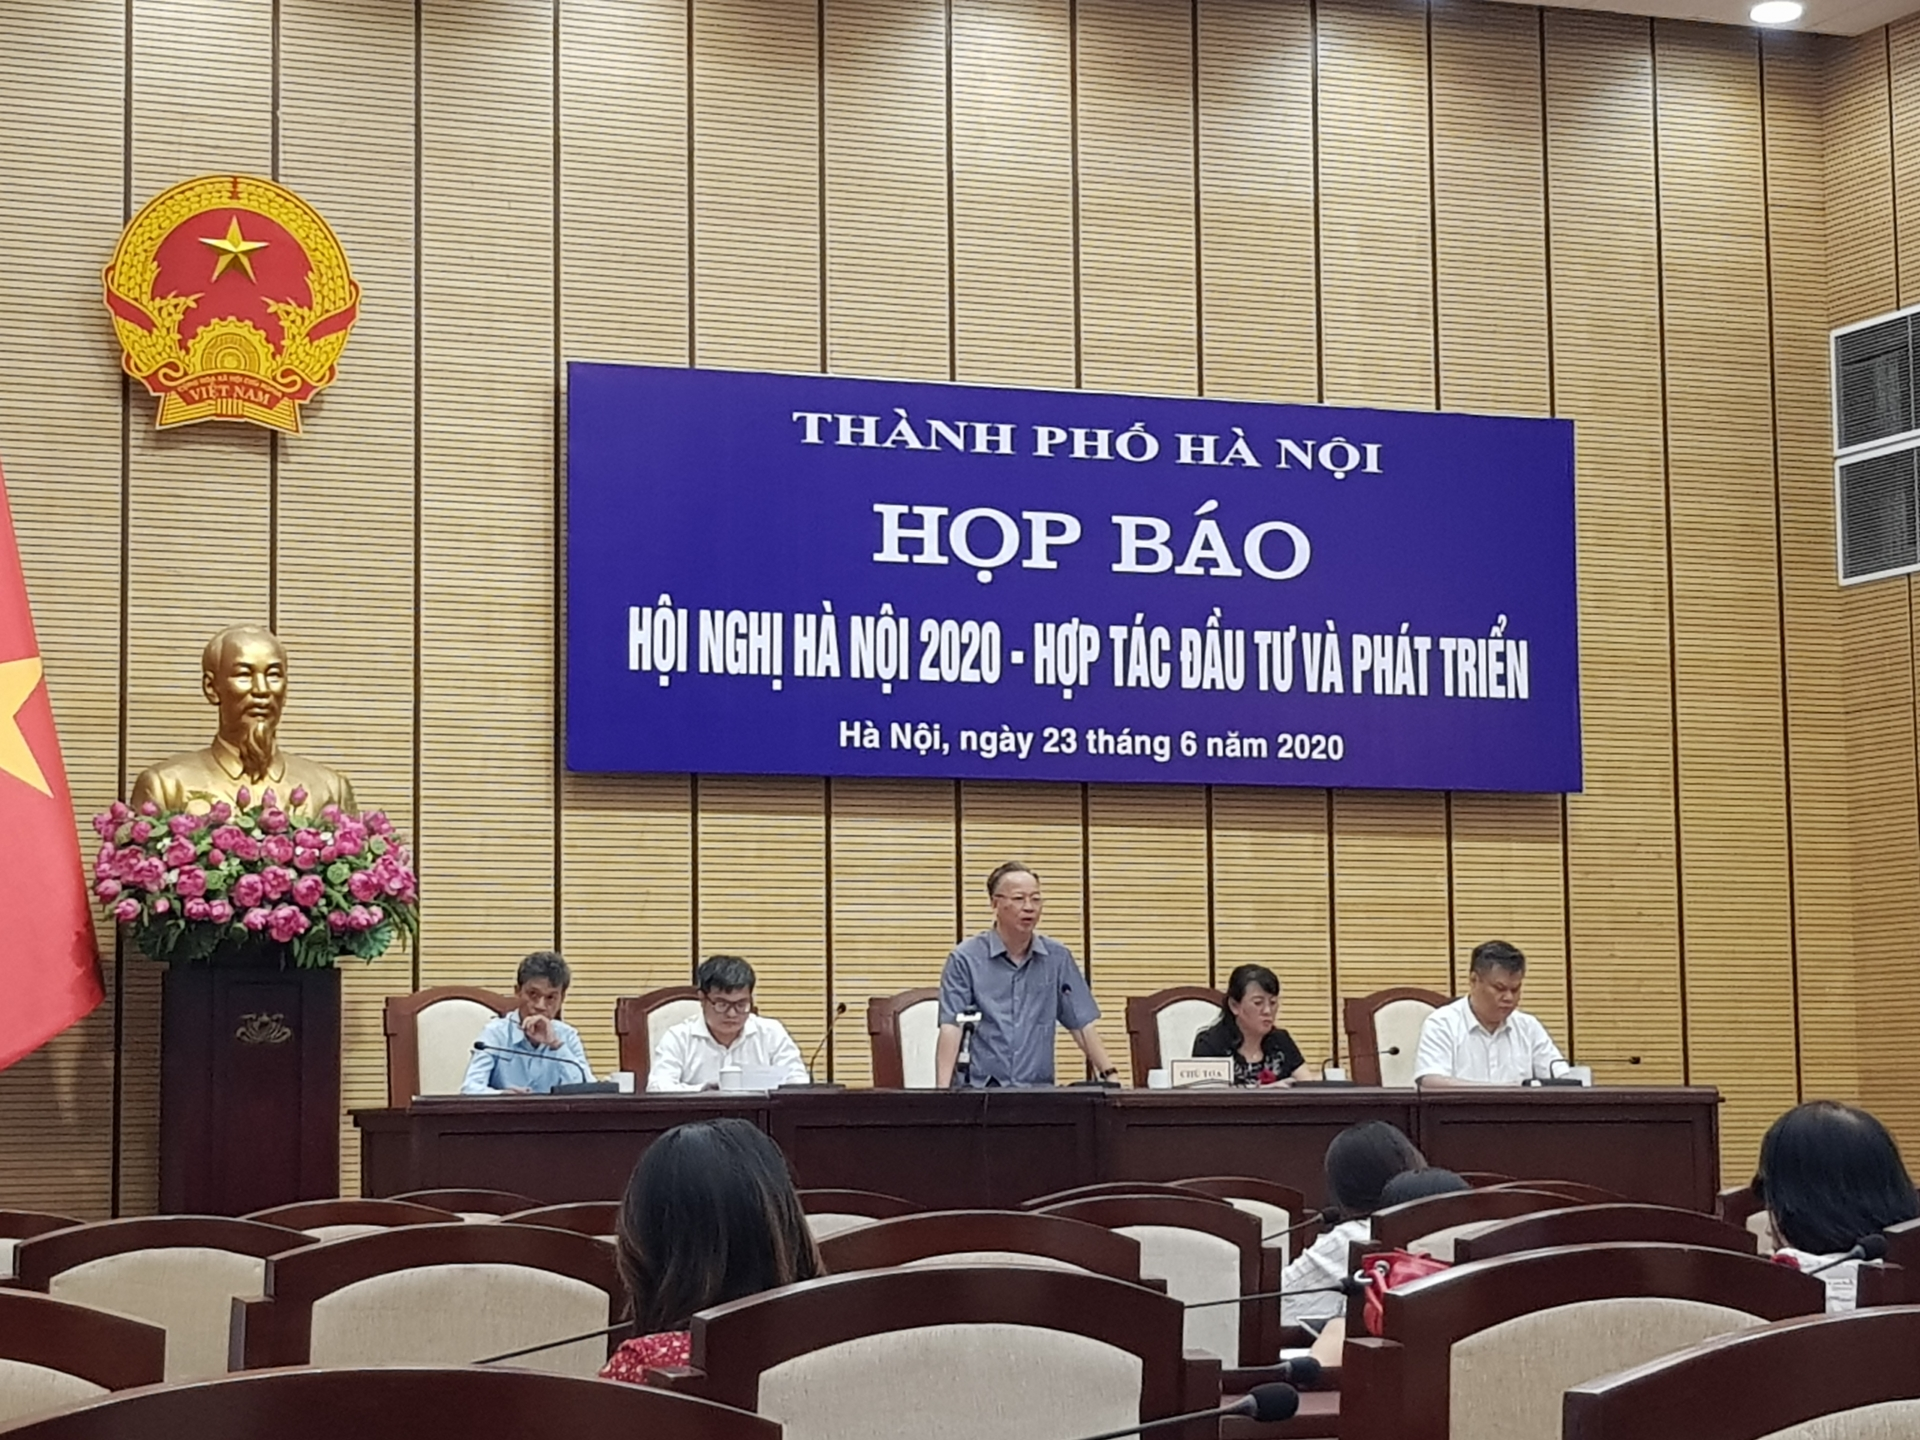 Hanoi Investment and Development Co-operation Conference to welcome 1,200 investors